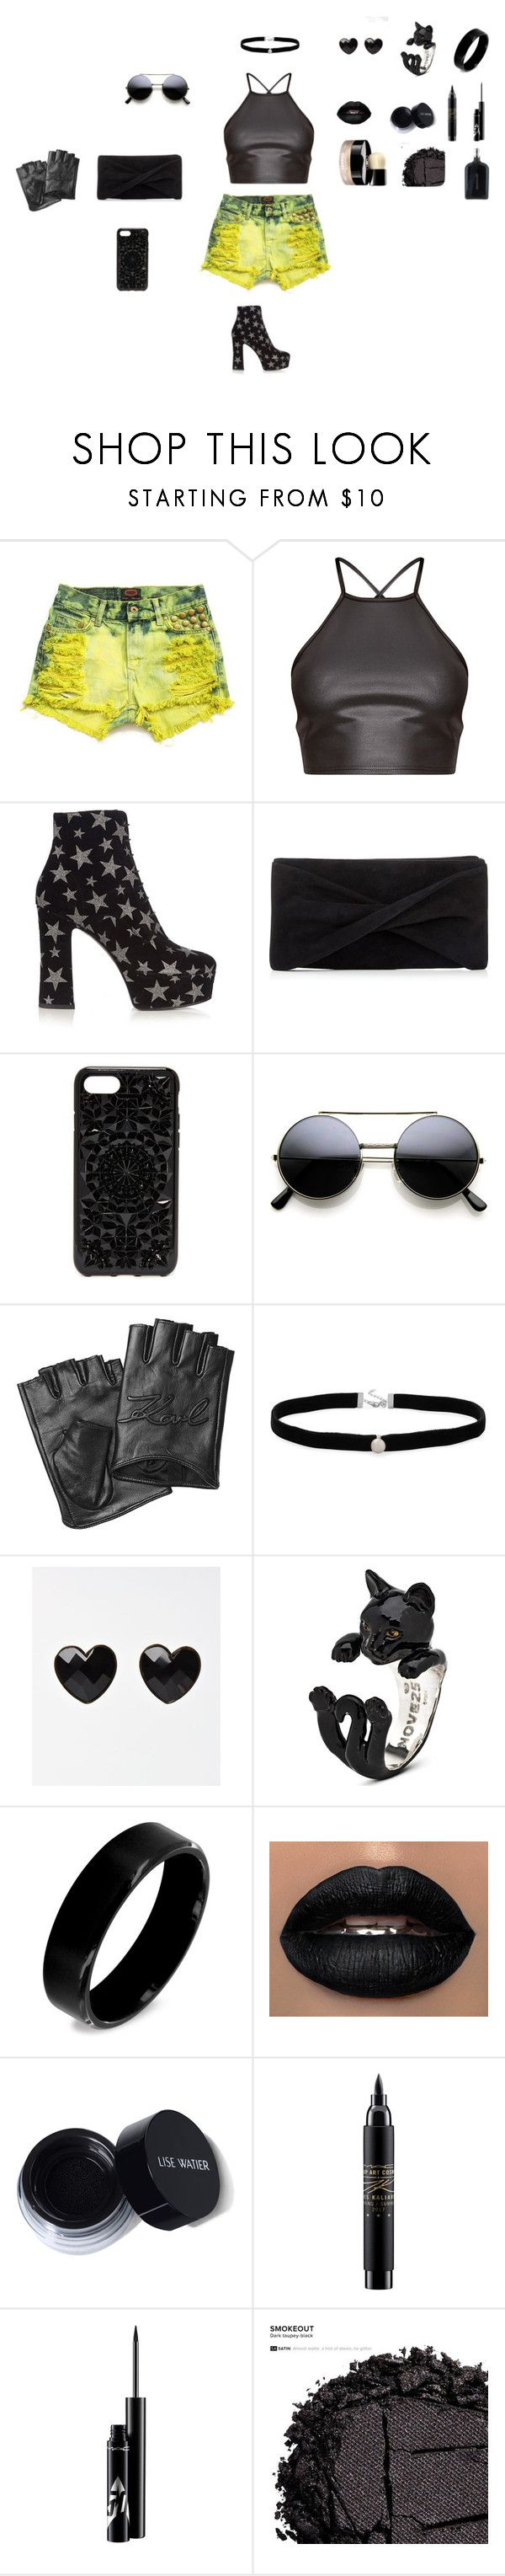 """""""Party city"""" by sierracook14 ❤ liked on Polyvore featuring Yves Saint Laurent, Reiss, Felony Case, Karl Lagerfeld, Amanda Rose Collection, West Coast Jewelry, MAC Cosmetics, Chanel, Urban Decay and Boris Bidjan Saberi"""